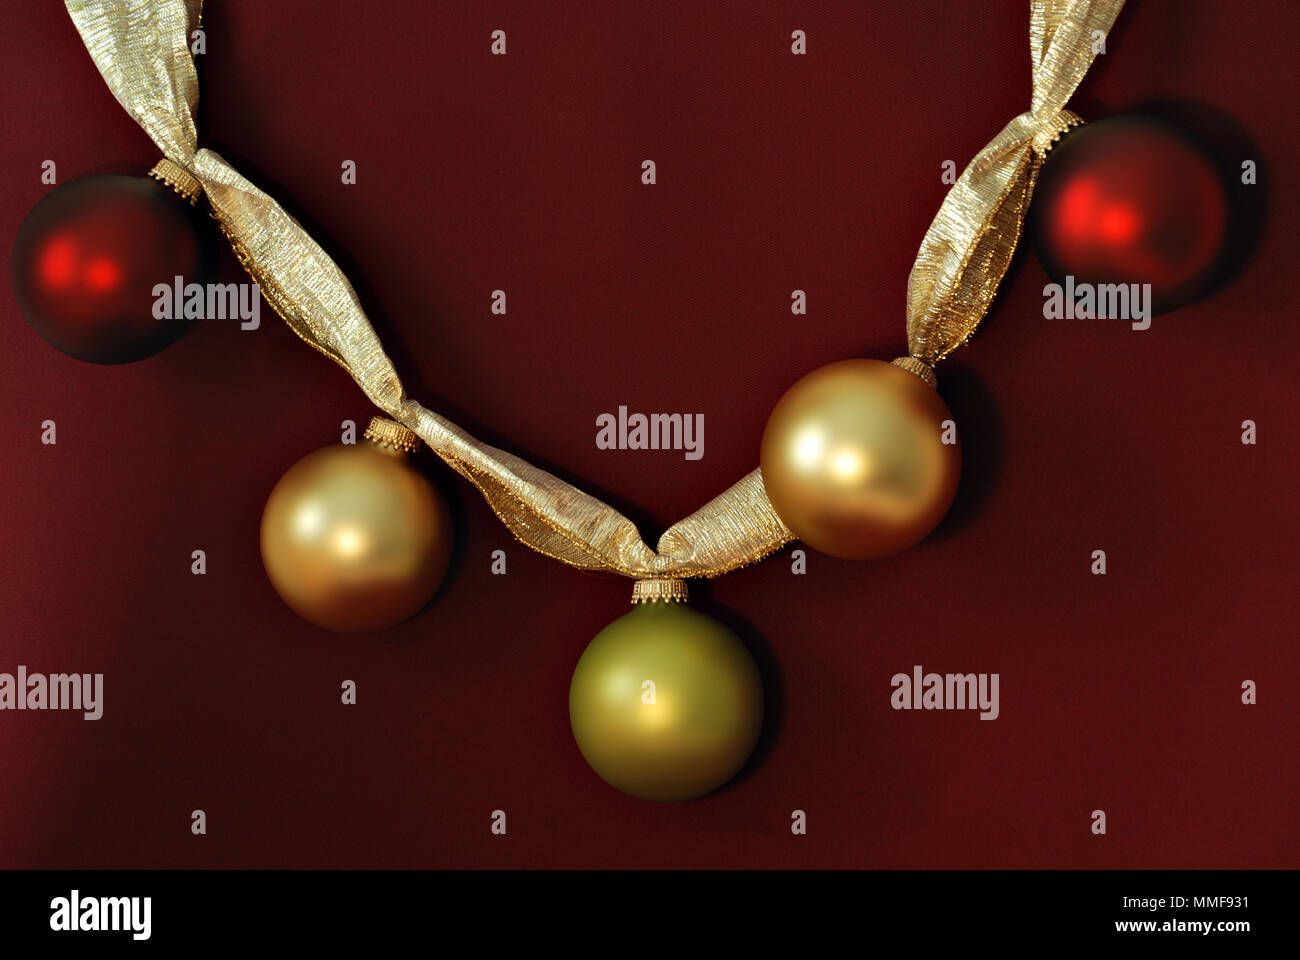 red gold and green christmas ornaments on a dark red background